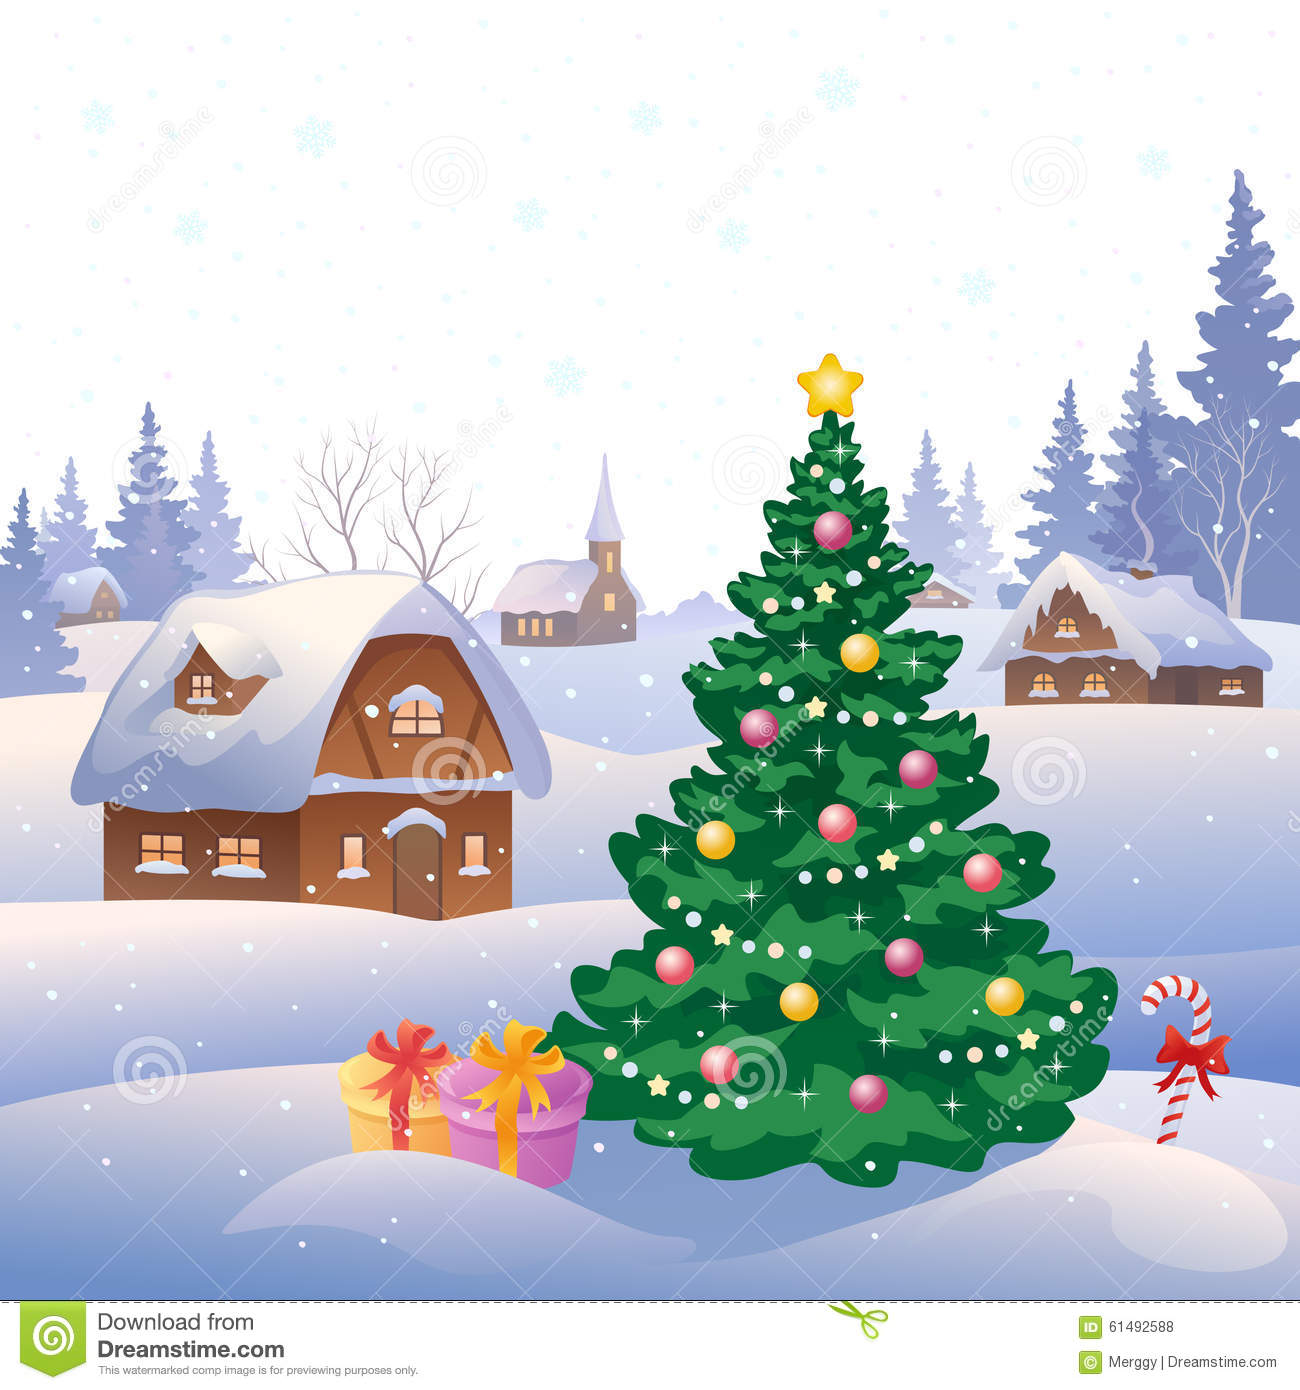 Illustration of a snowy village and Christmas tree.